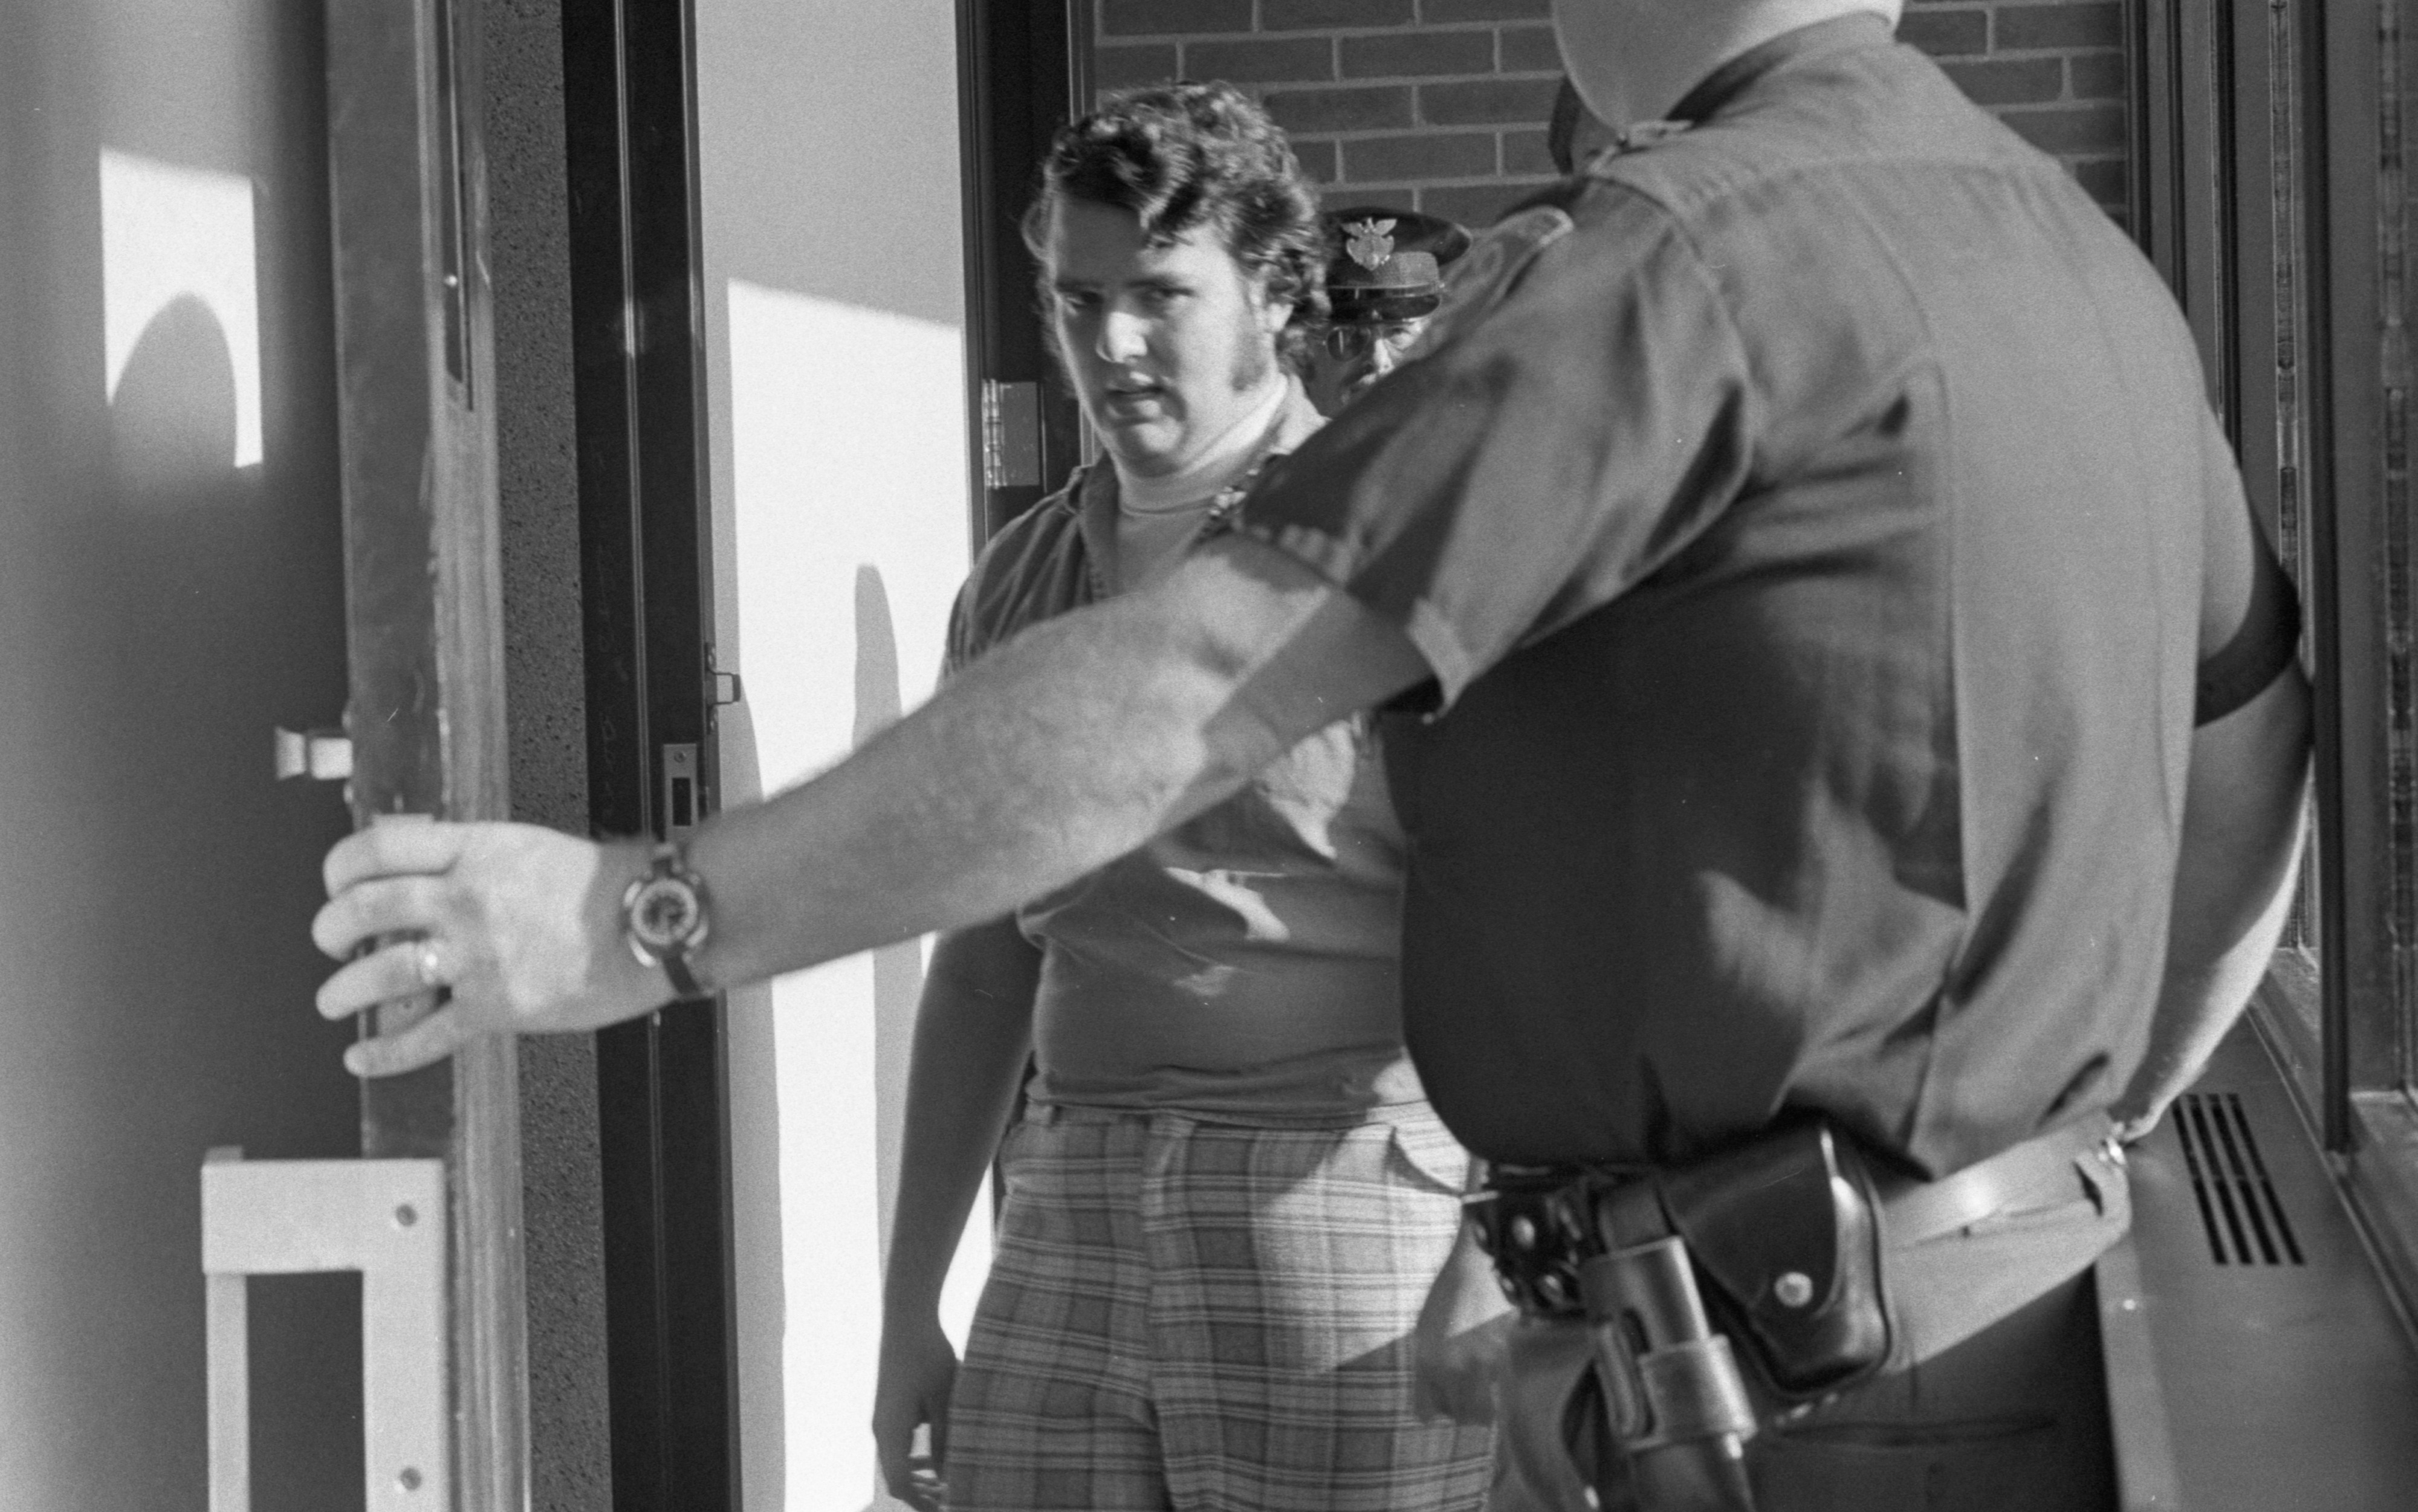 Charles Duty, Bank Robbery Suspect, Entering Jail Cell, August 1975 image